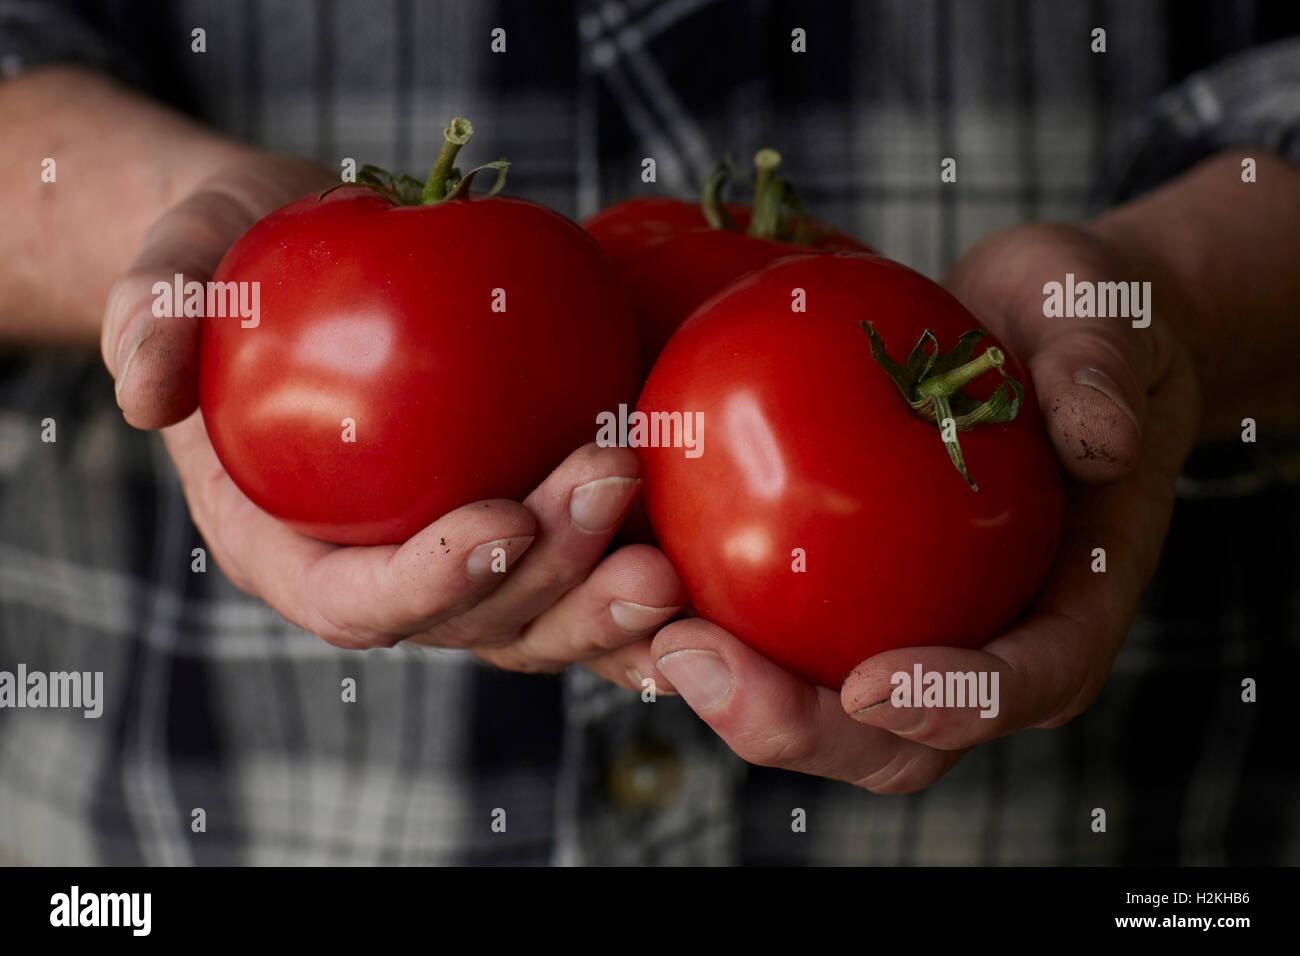 close up photograph of mans hands holding freshly picked, vine ripe red tomatoes, with dirt on his hands, wearing - Stock Image